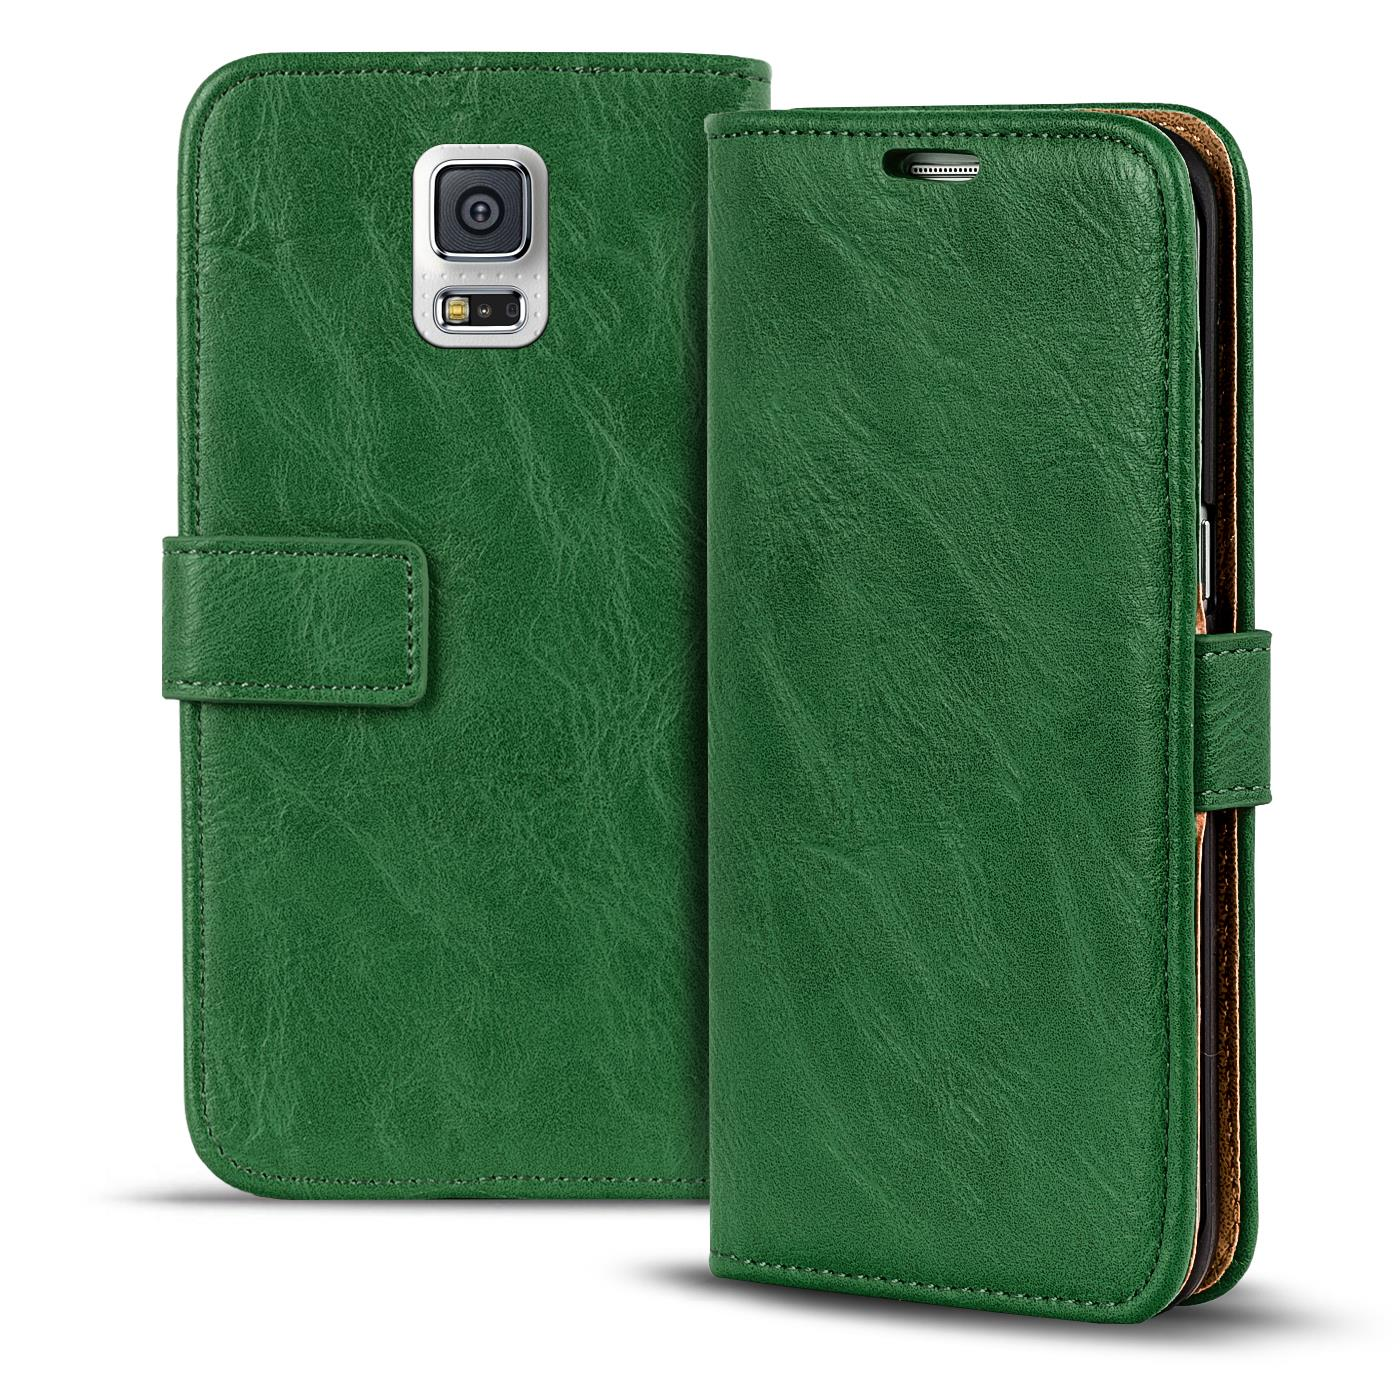 new product 5a658 cc20e Details about Phone Case Samsung Galaxy S5 Neo Flip Cover Case Wallet Case